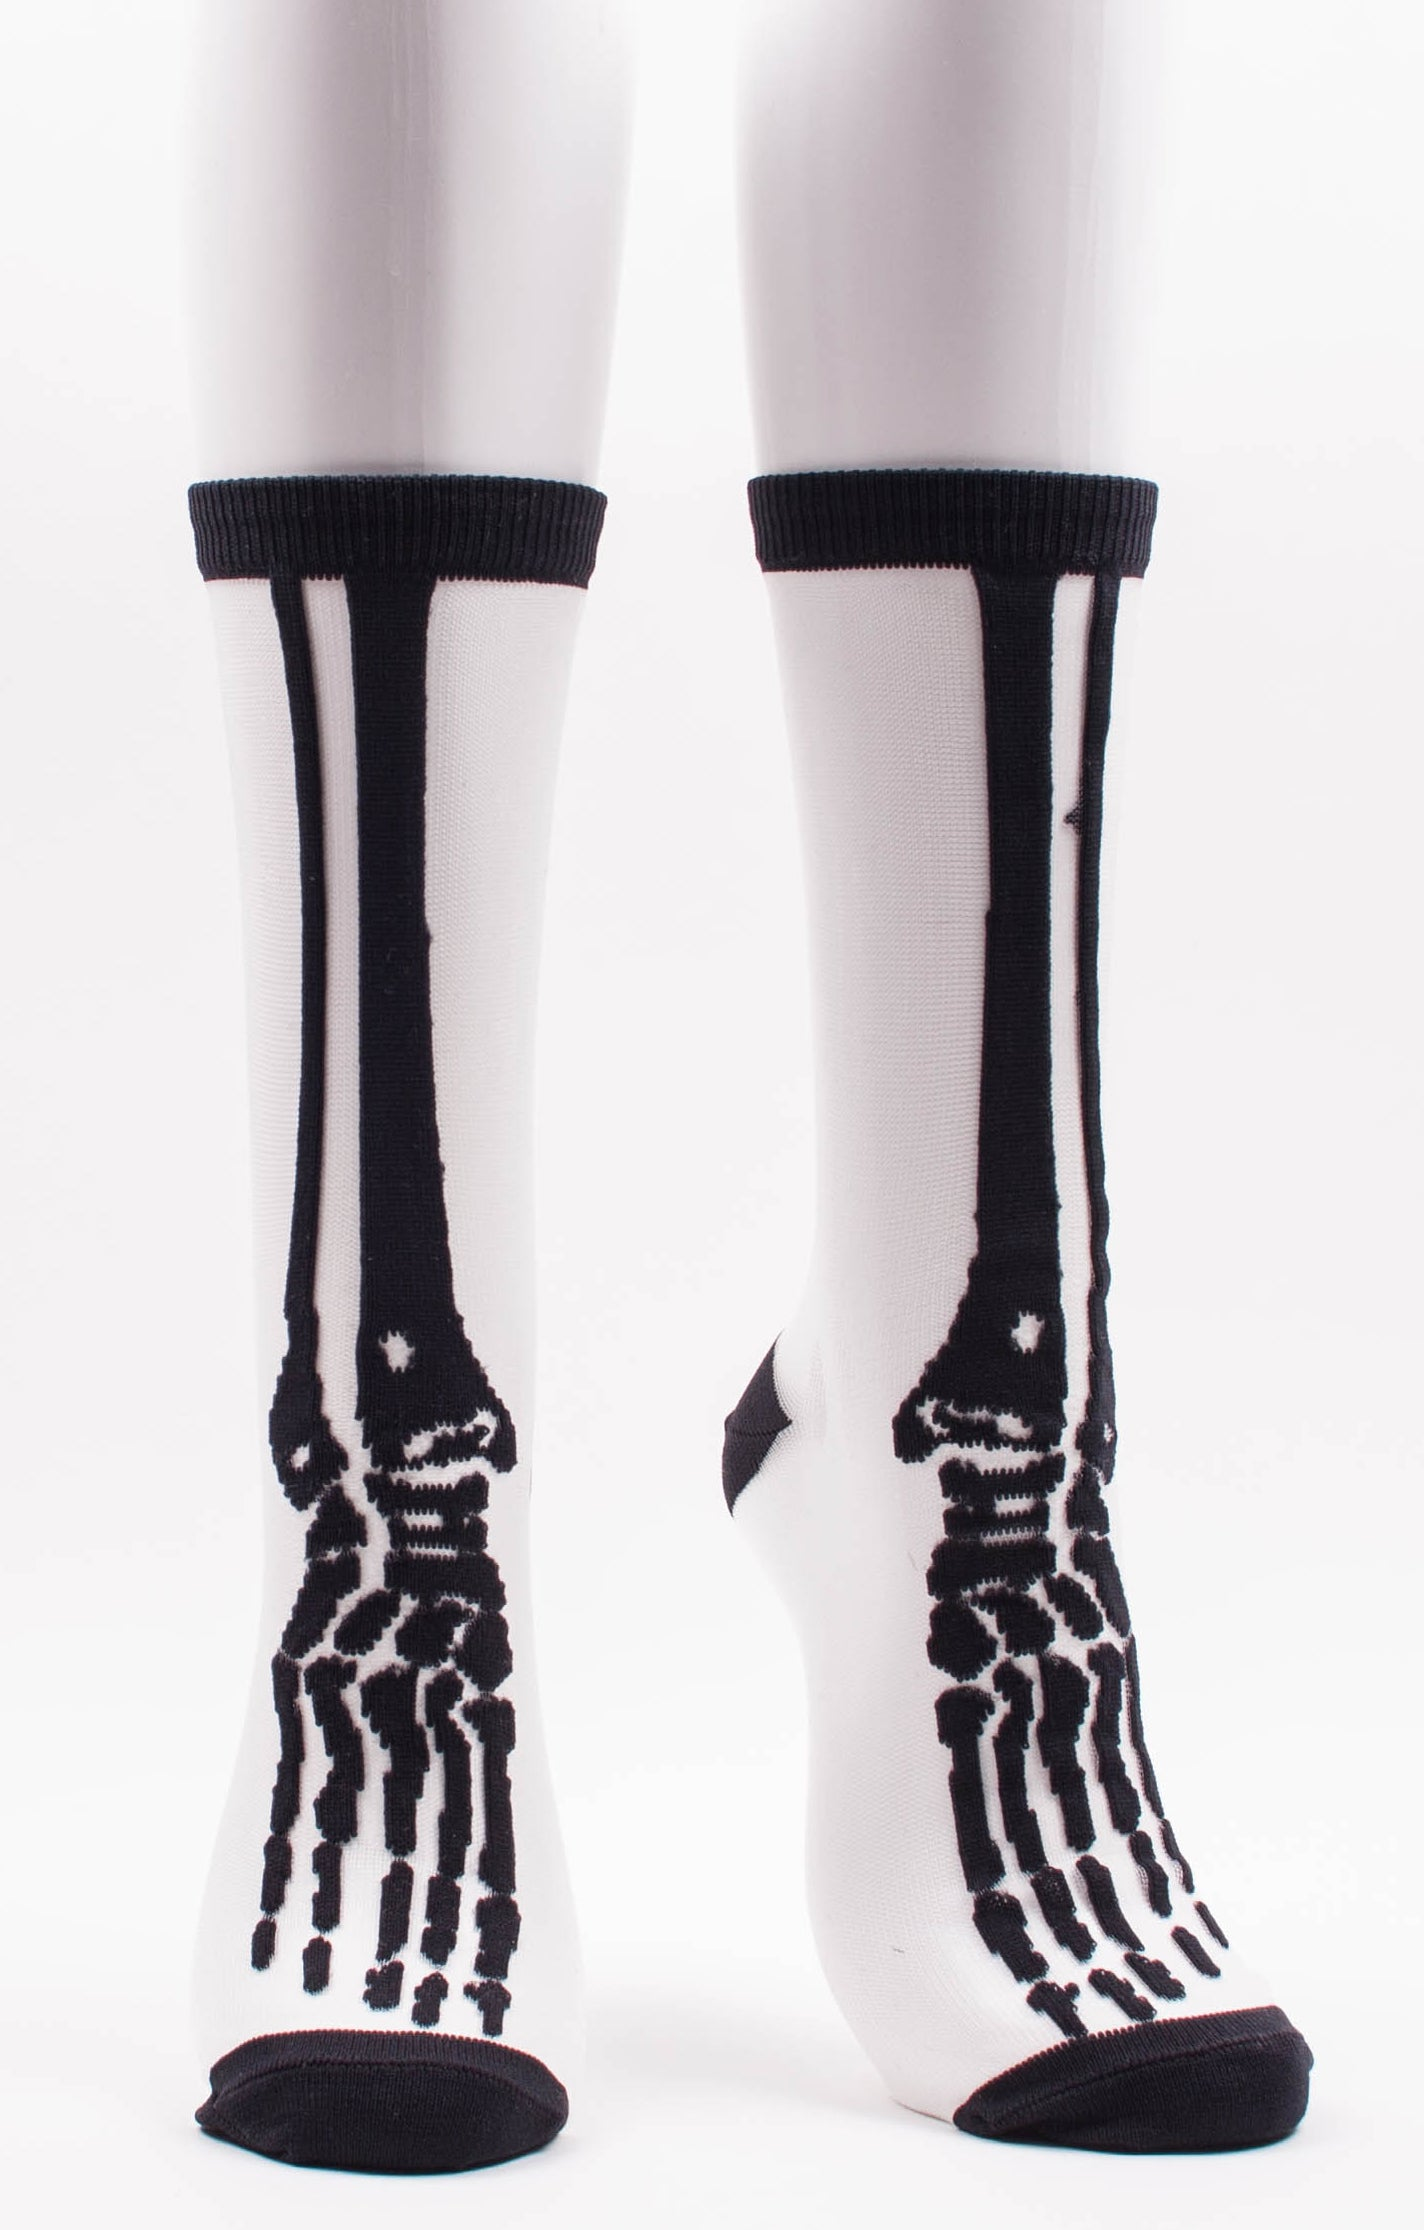 CLEAR SKELETON SHEER SOCKS